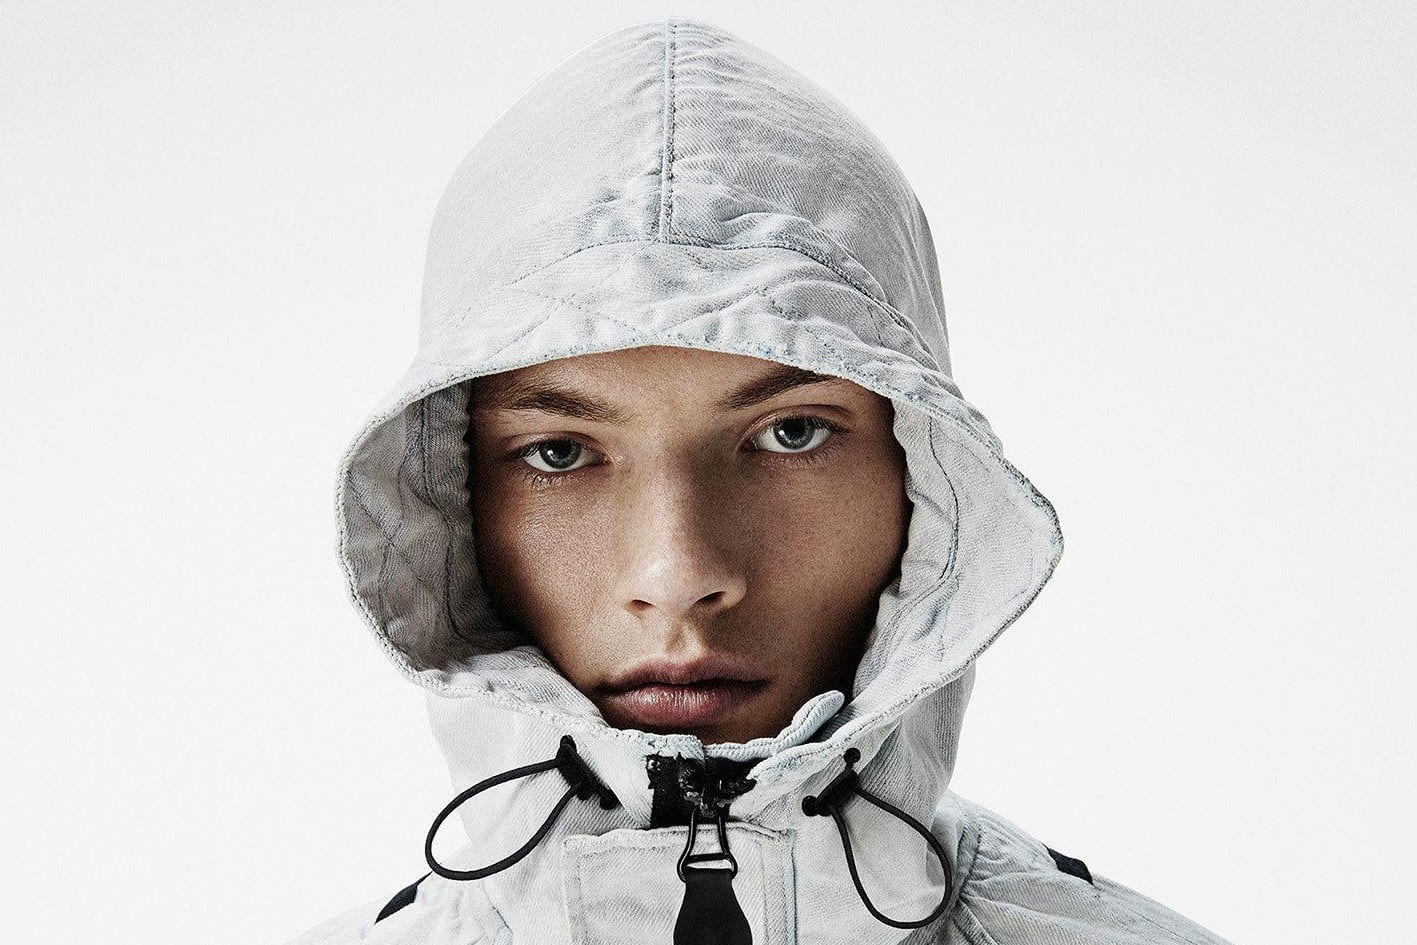 Comment Aitor Throup A Réveillé G-Star Raw